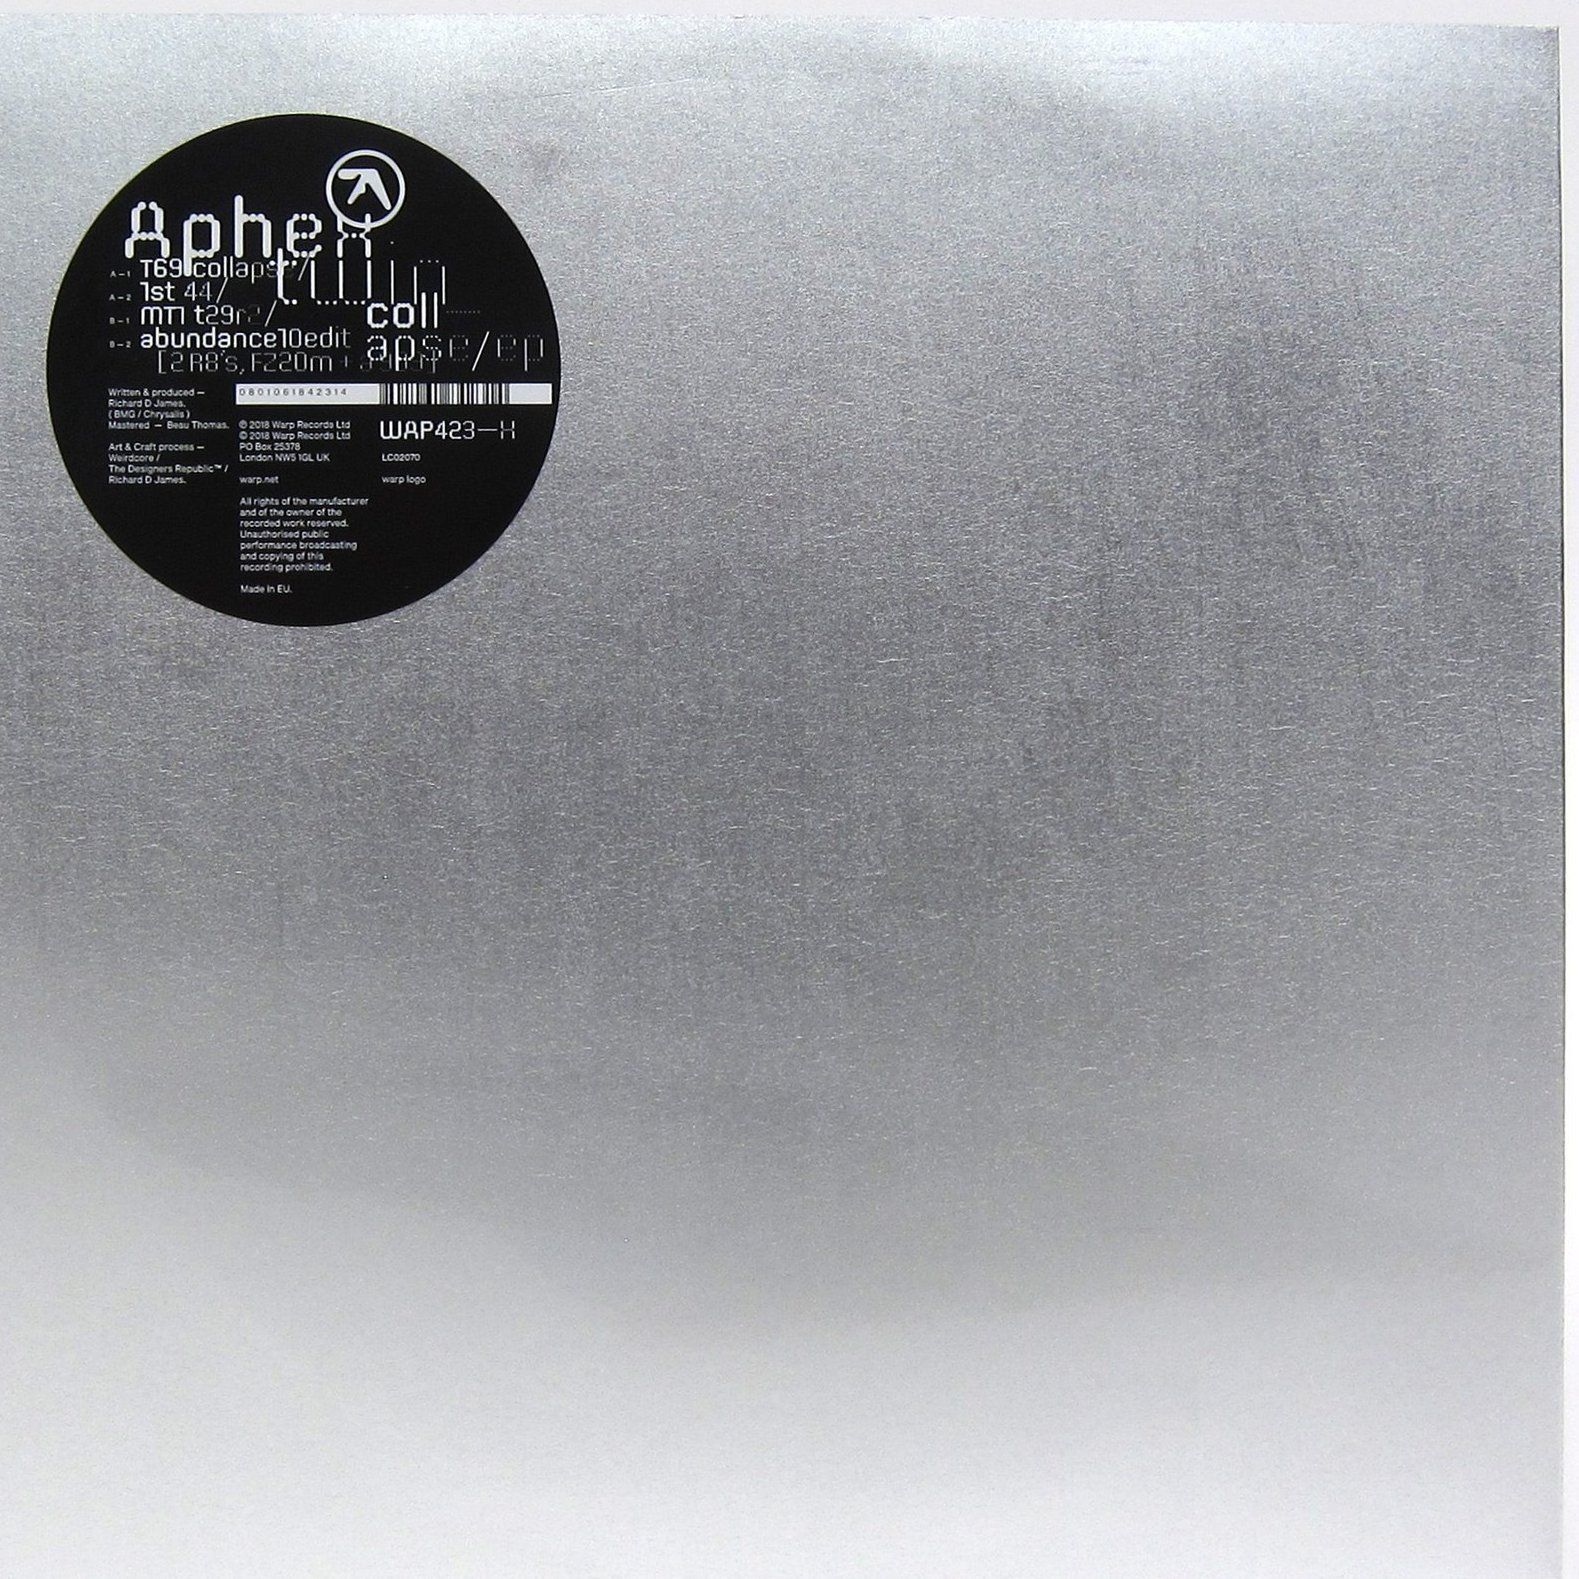 Aphex twin | Products | Indie